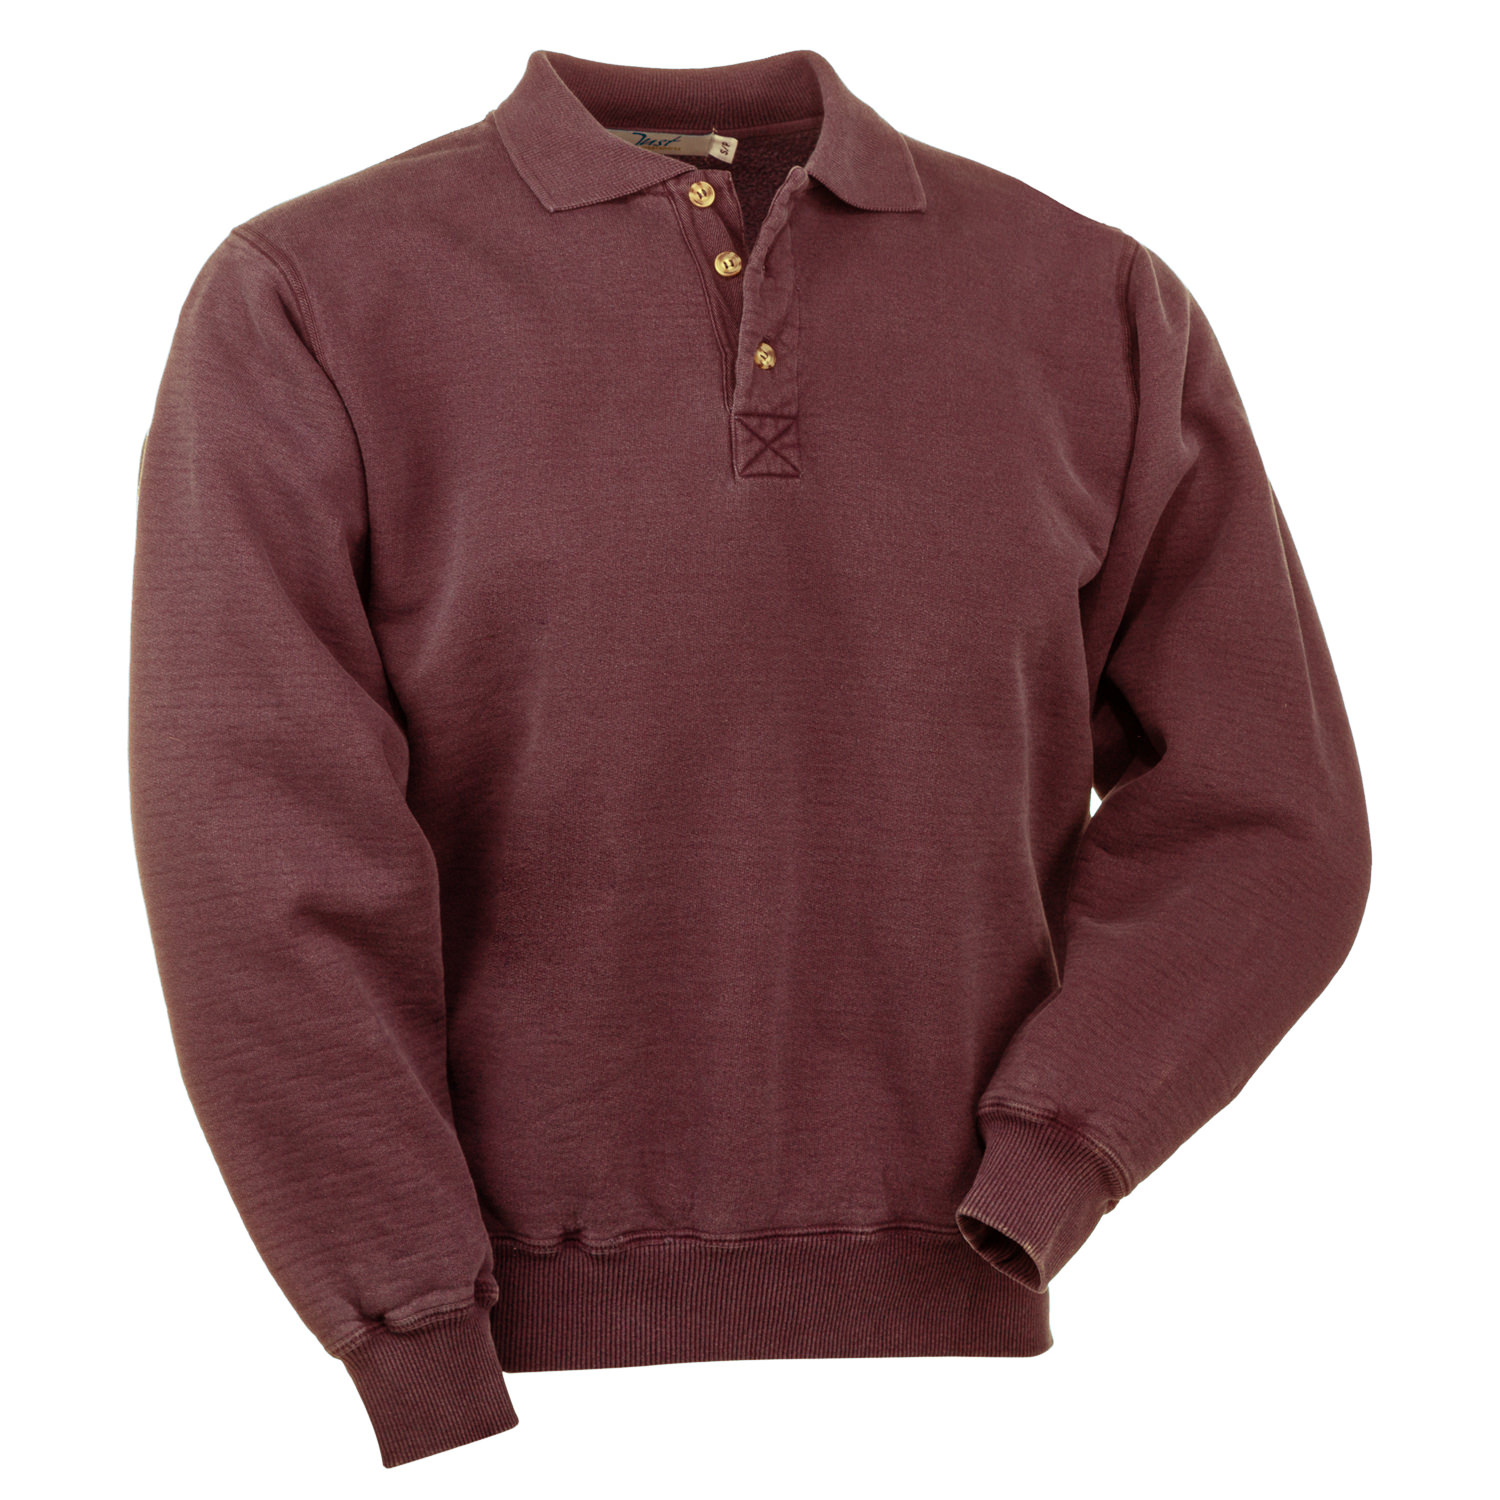 3 Button Polo Burgundy Sand 100% Cotton